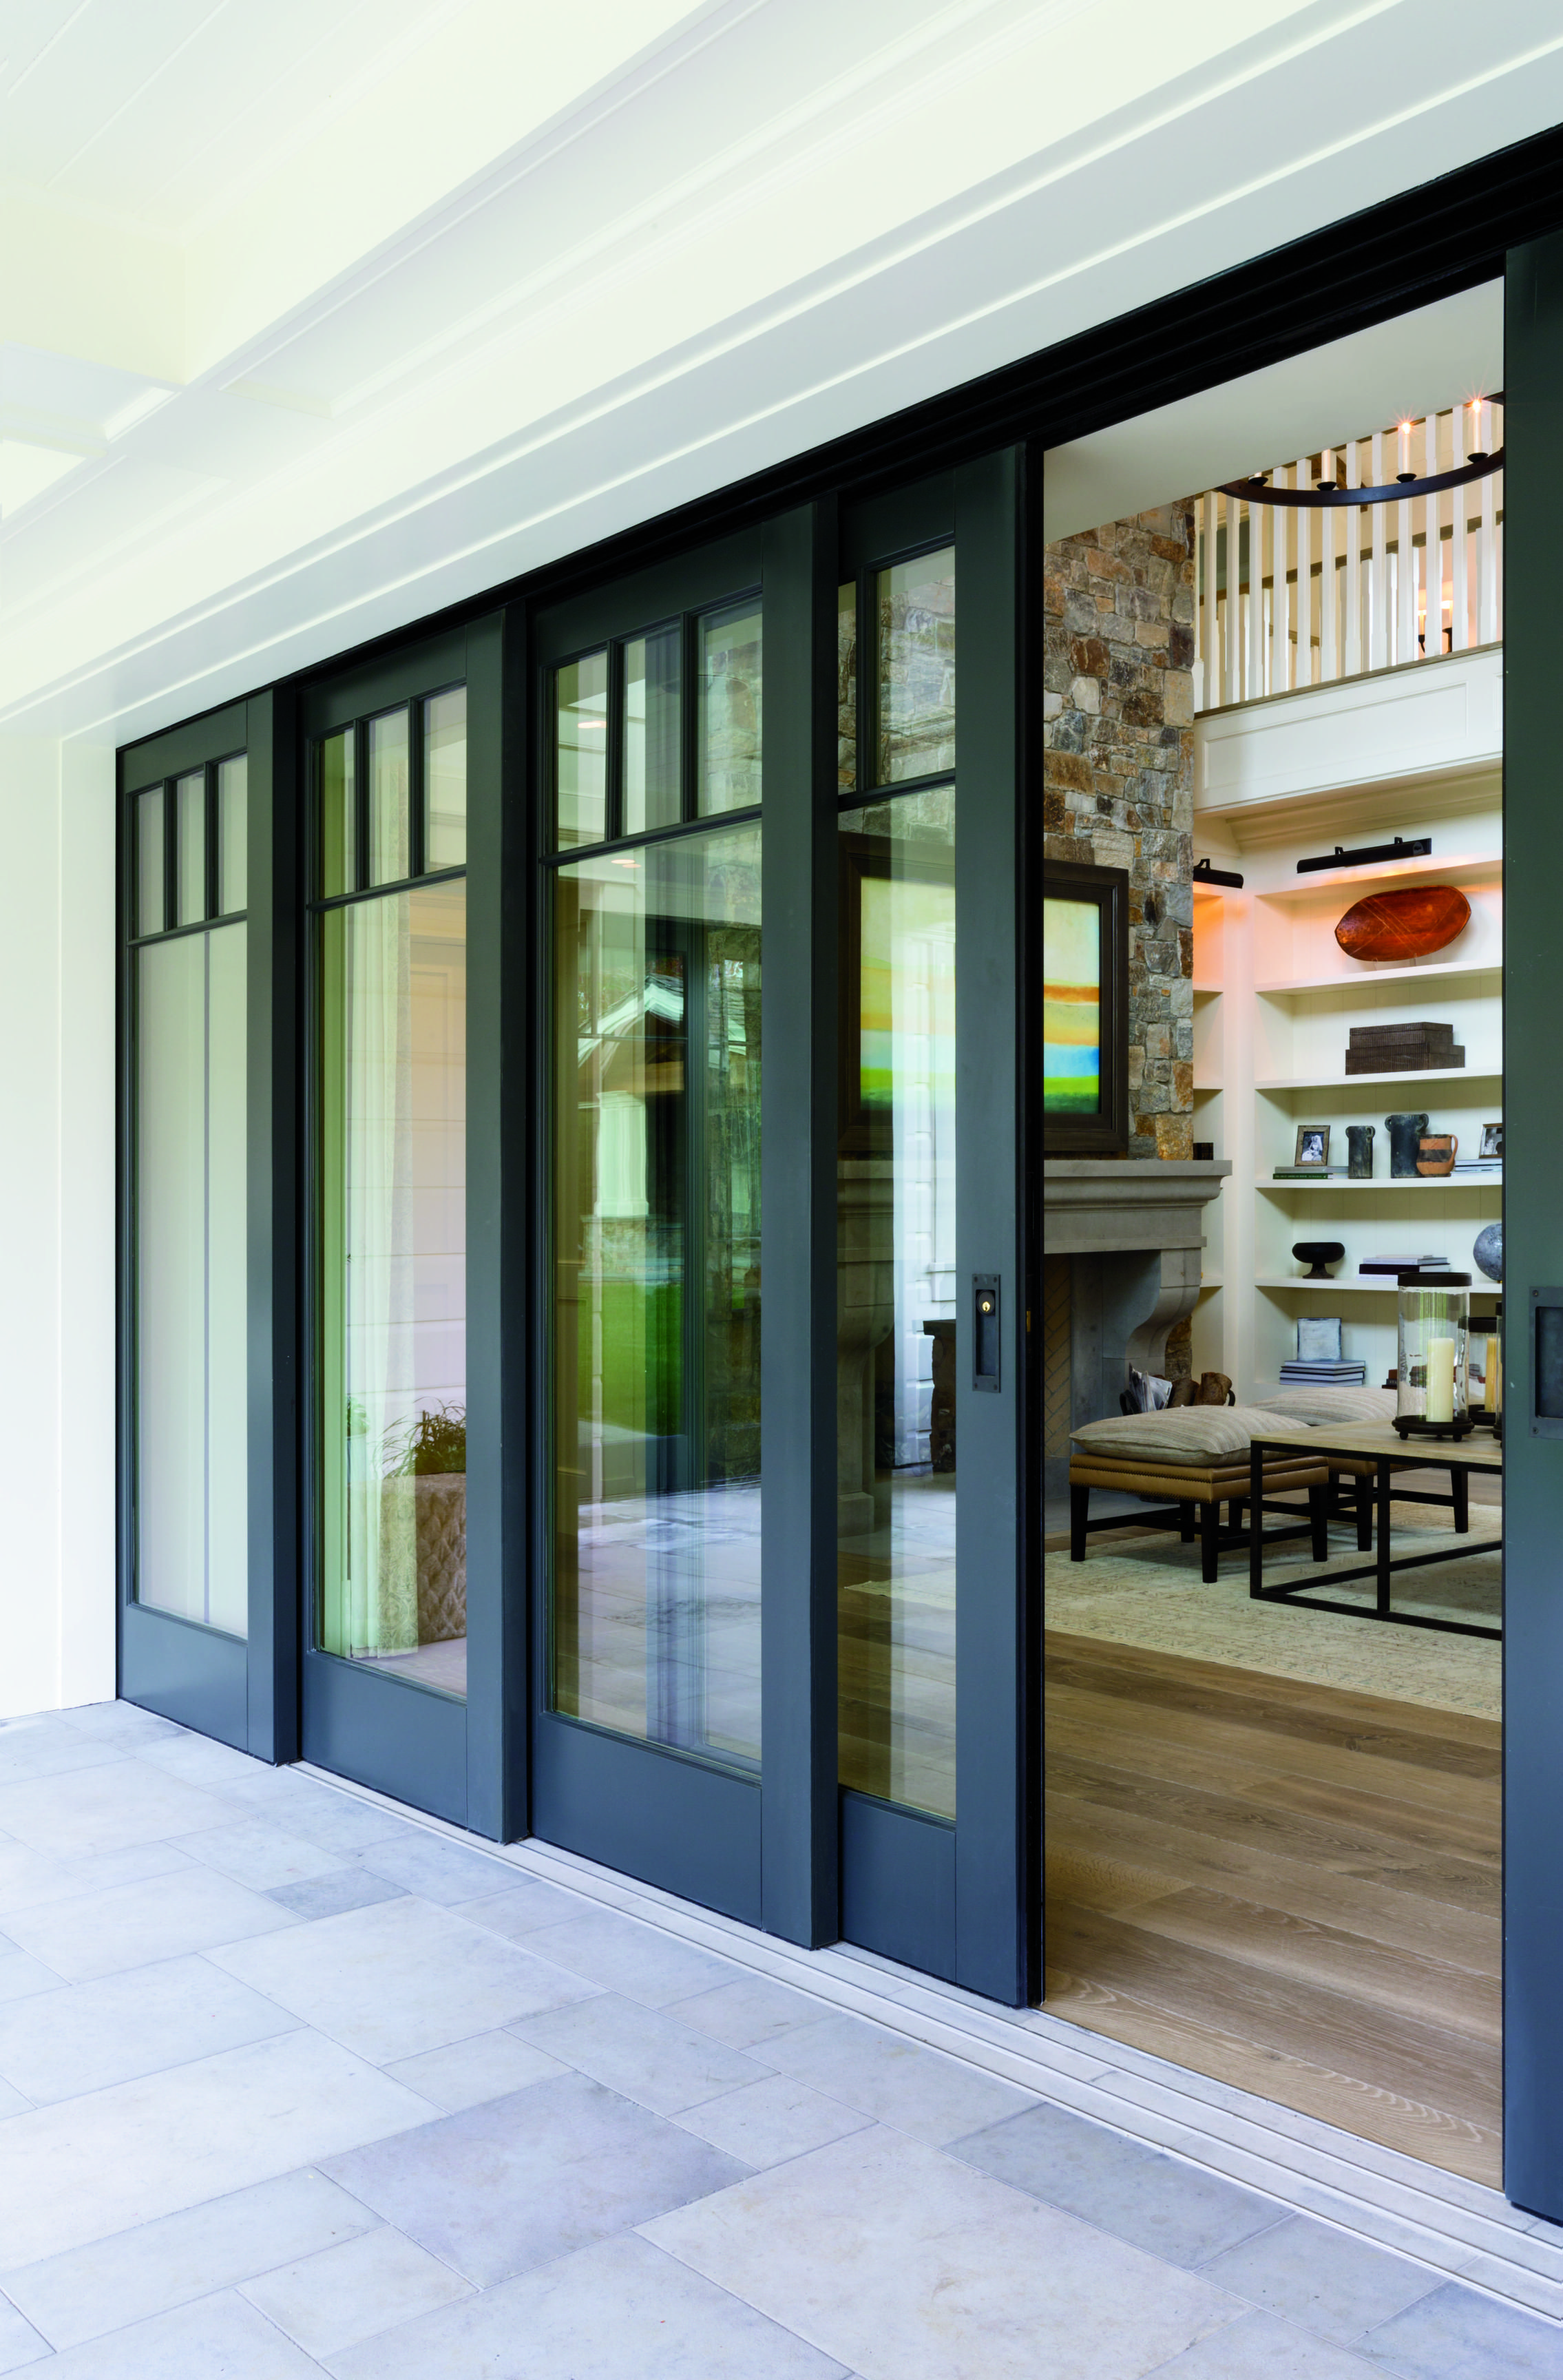 barns homebnc inspired best sliding doors for ideas door venetian design grotto and designs barn